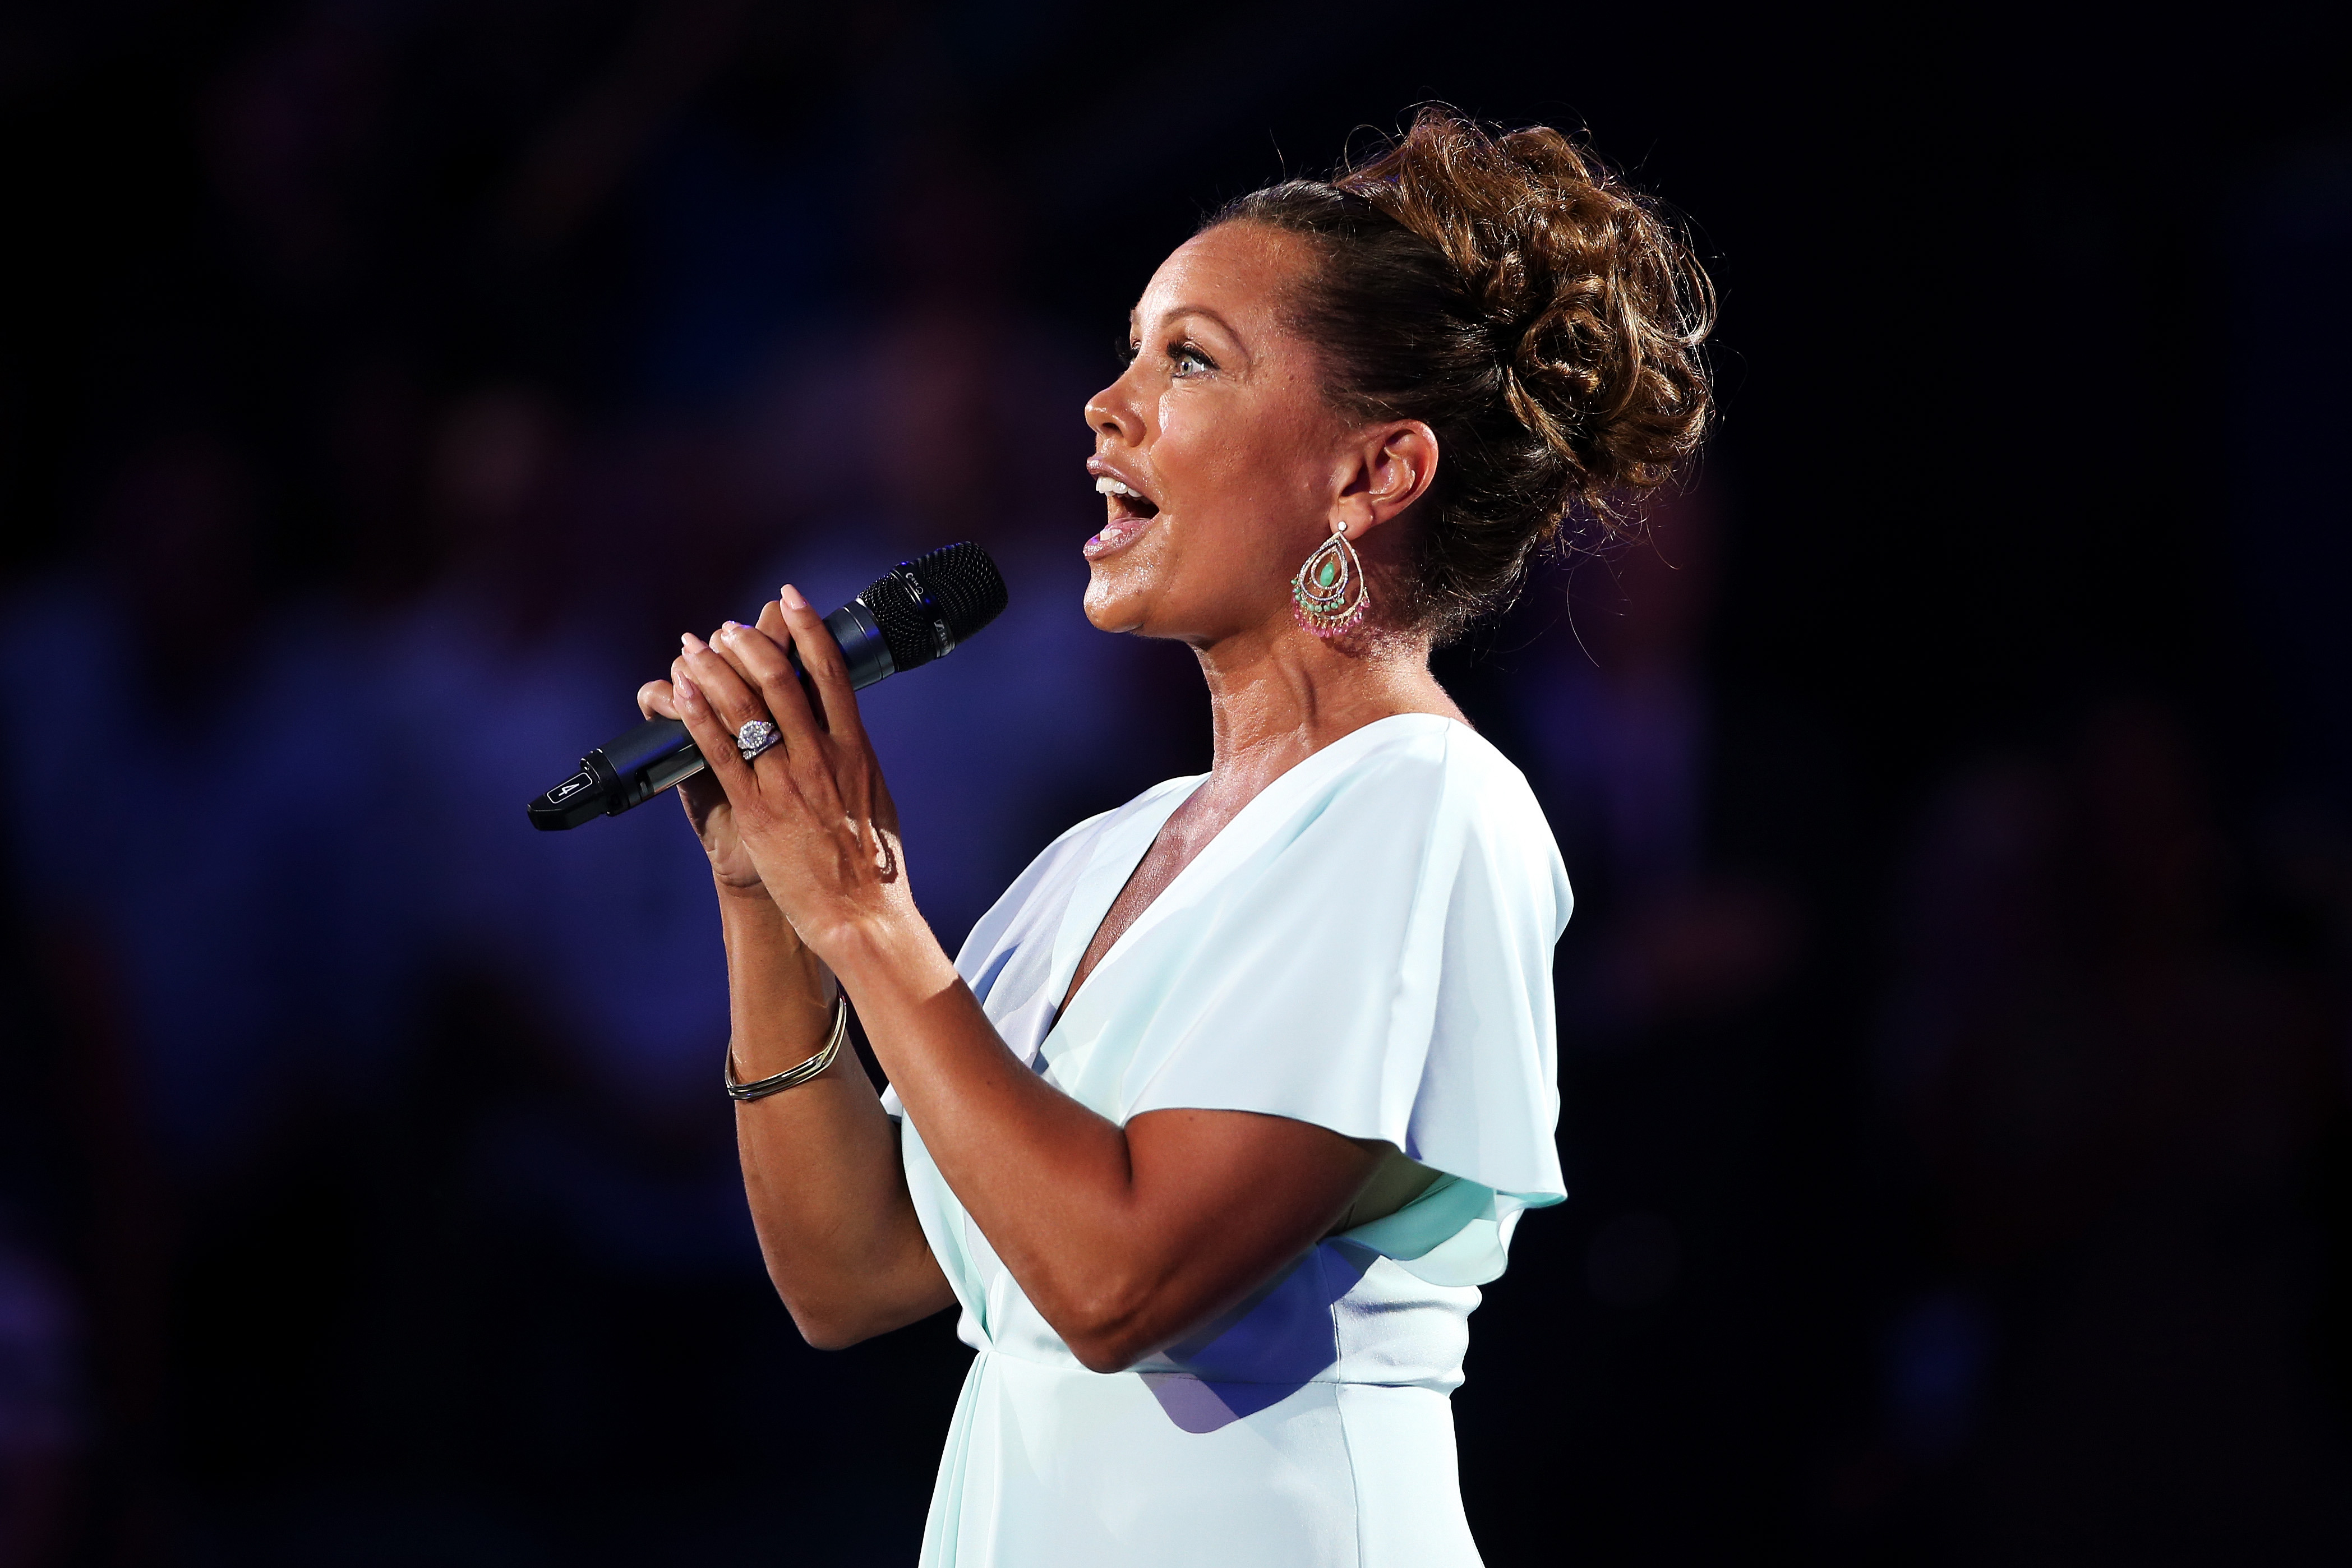 Actress and singer Vanessa Williams performs the national anthem during the opening ceremony for the 2015 US Open on Aug. 31 in New York City.  (Getty Images)